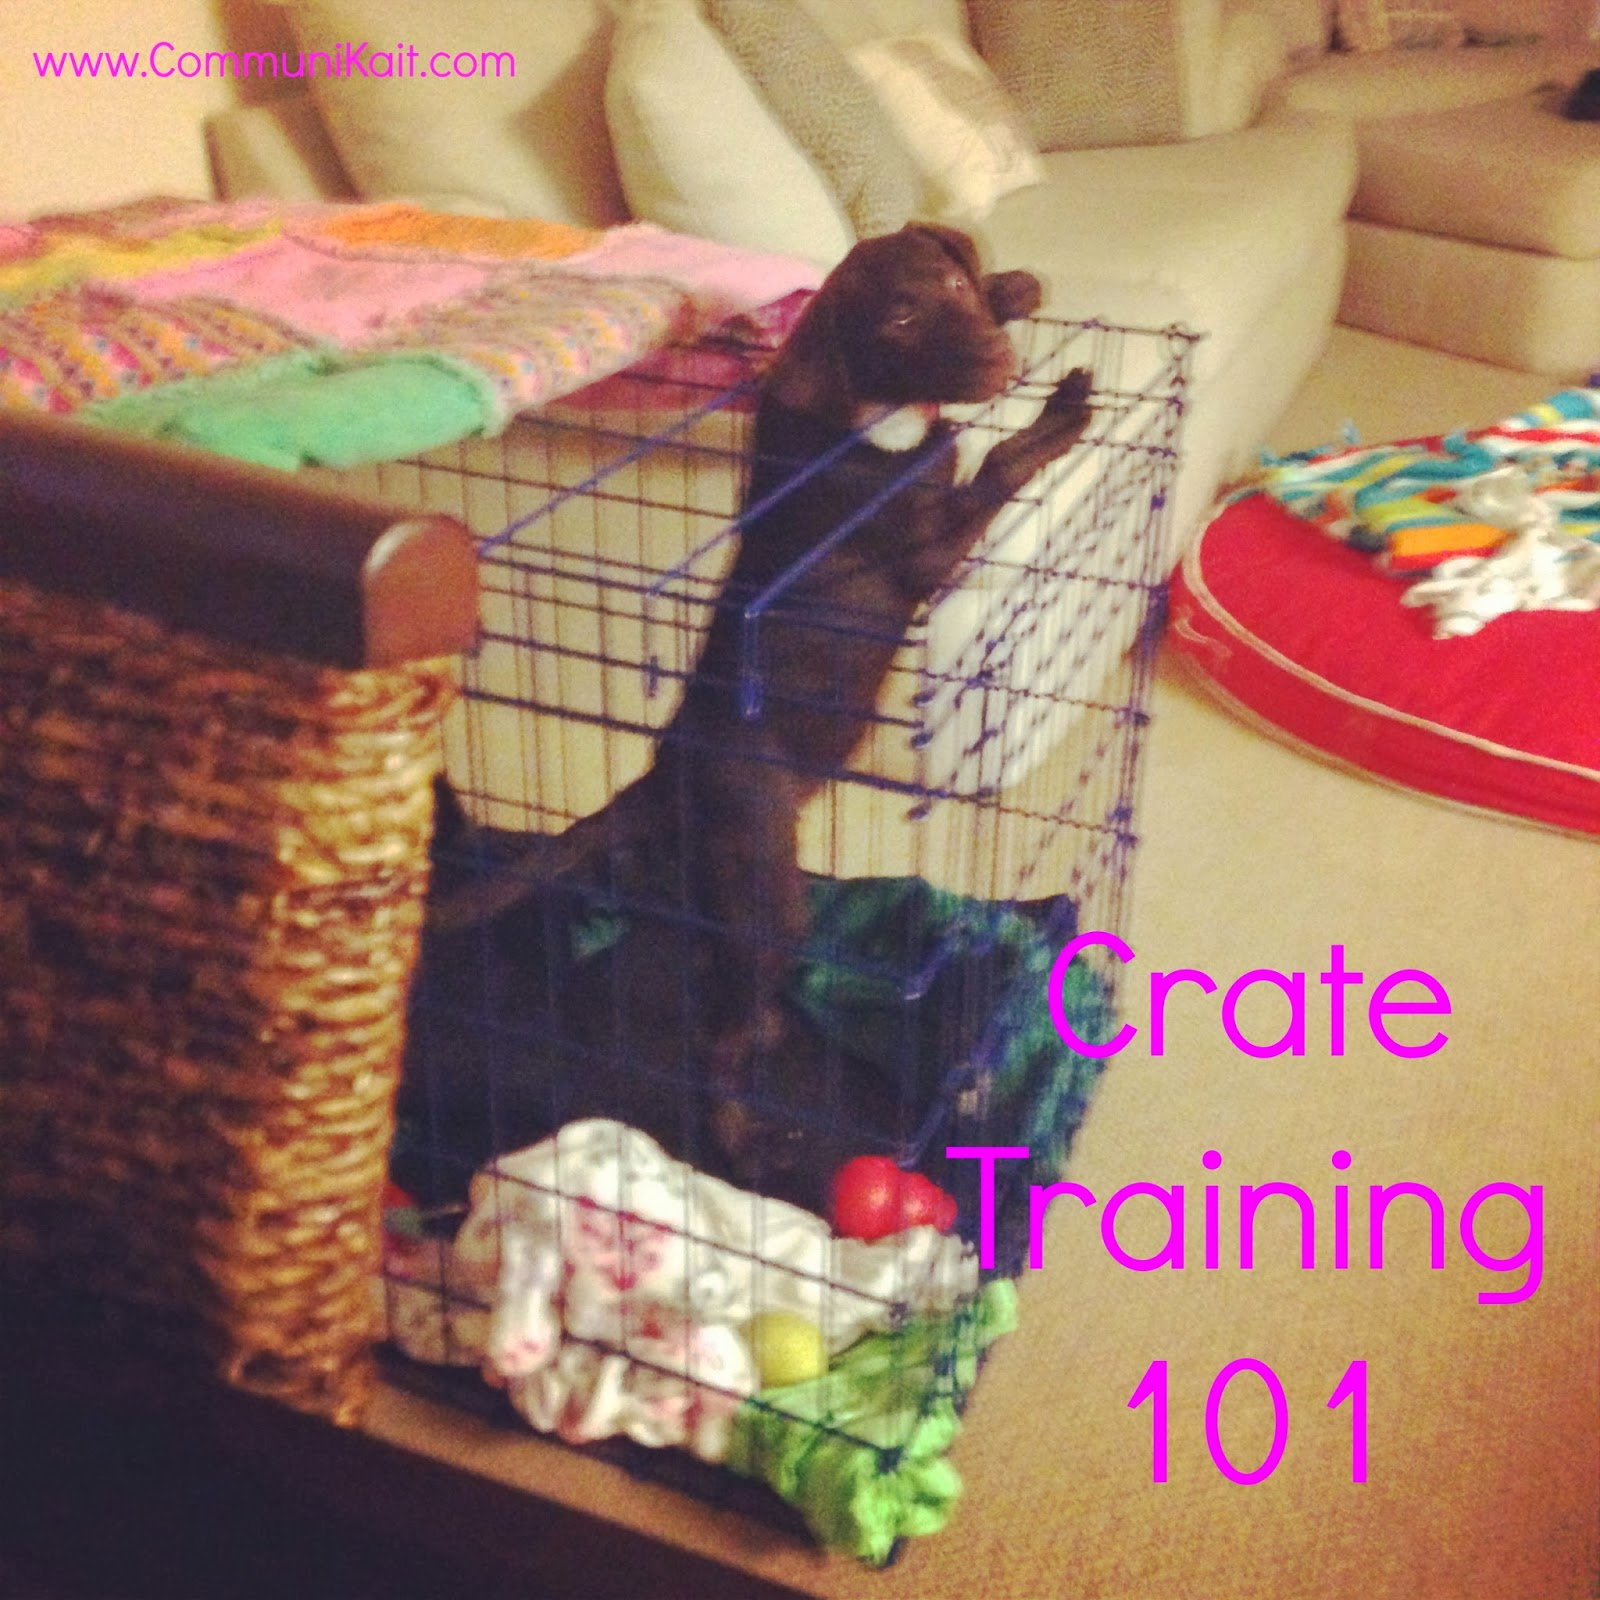 how to crate train your puppy when you work